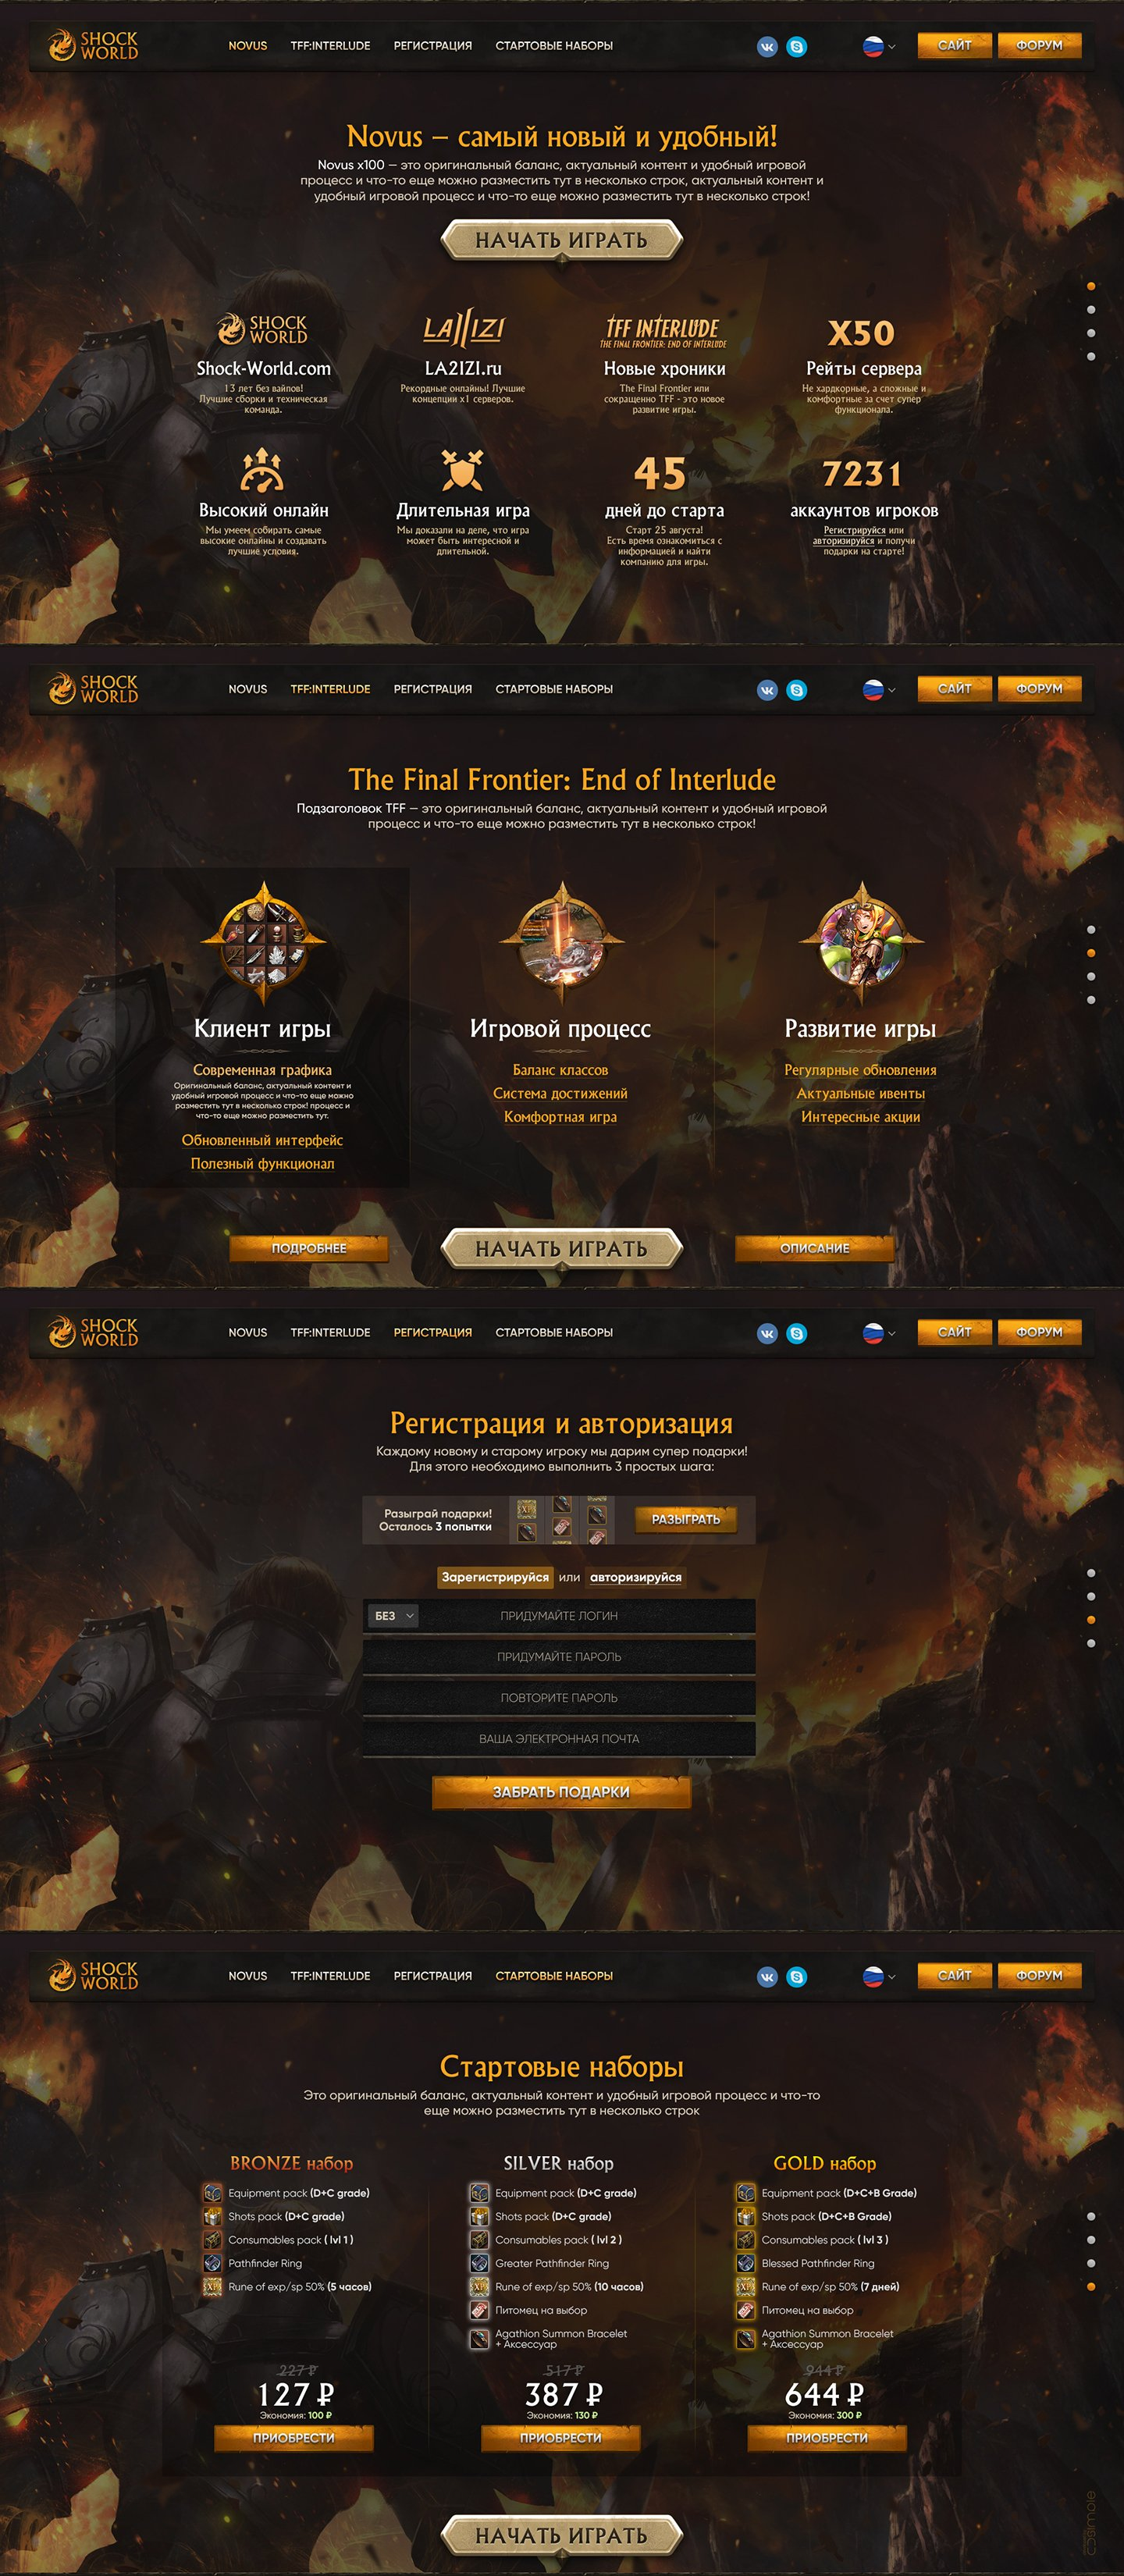 Shock-World > Landing page for Lineage 2 private server. Landing page